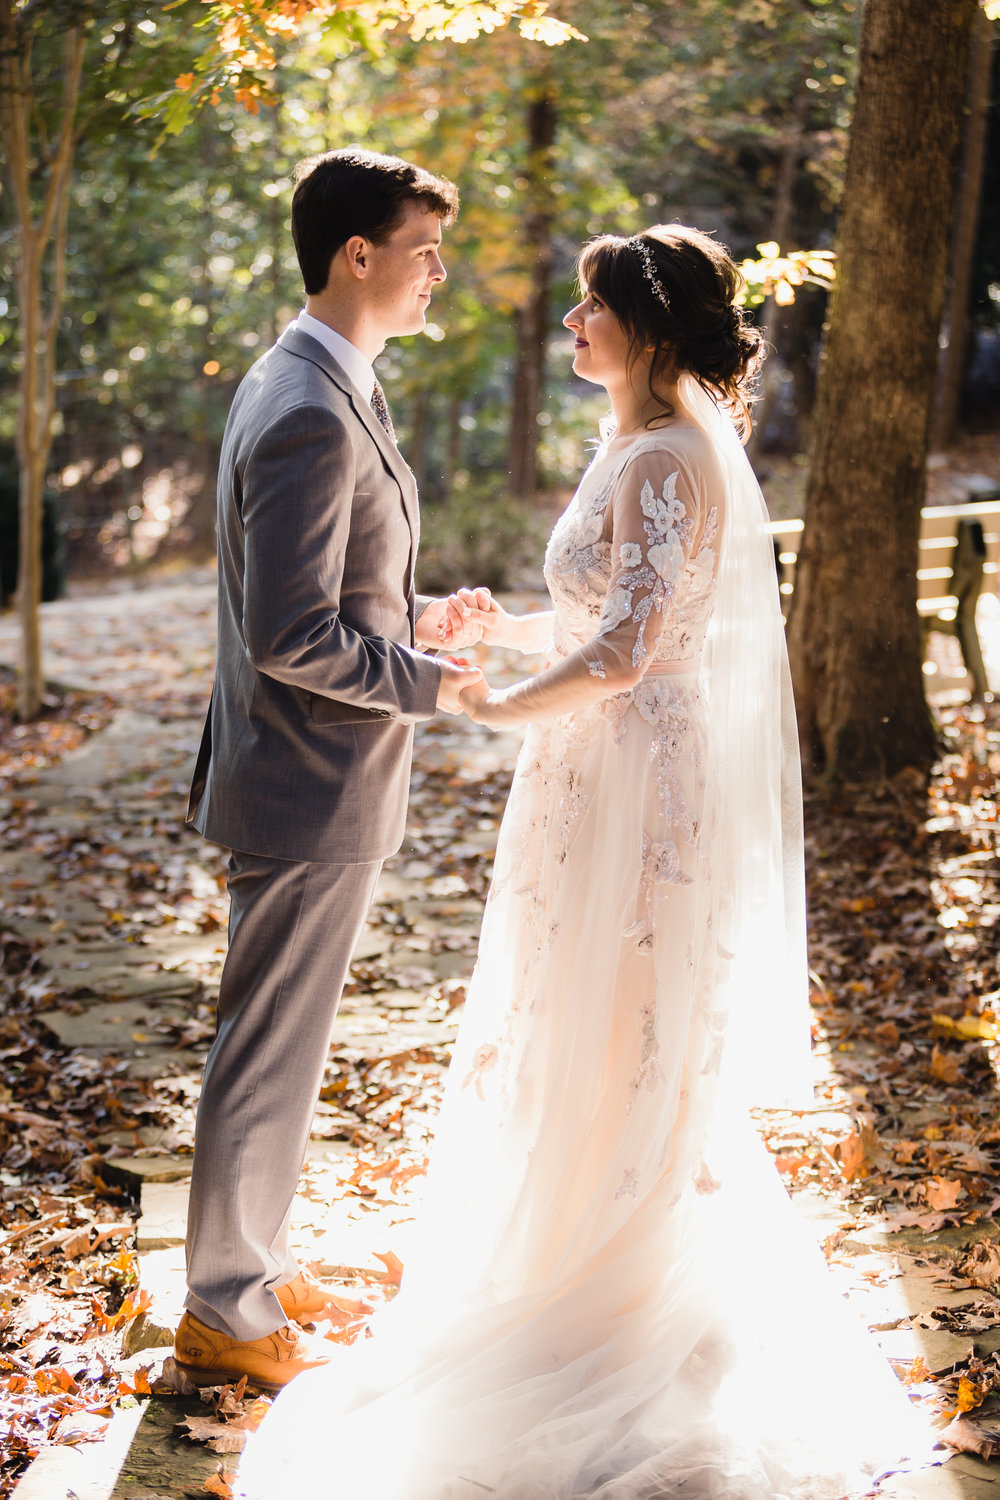 Gianna Keiko Atlanta NY Brooklyn Wedding Photographer-23.jpg